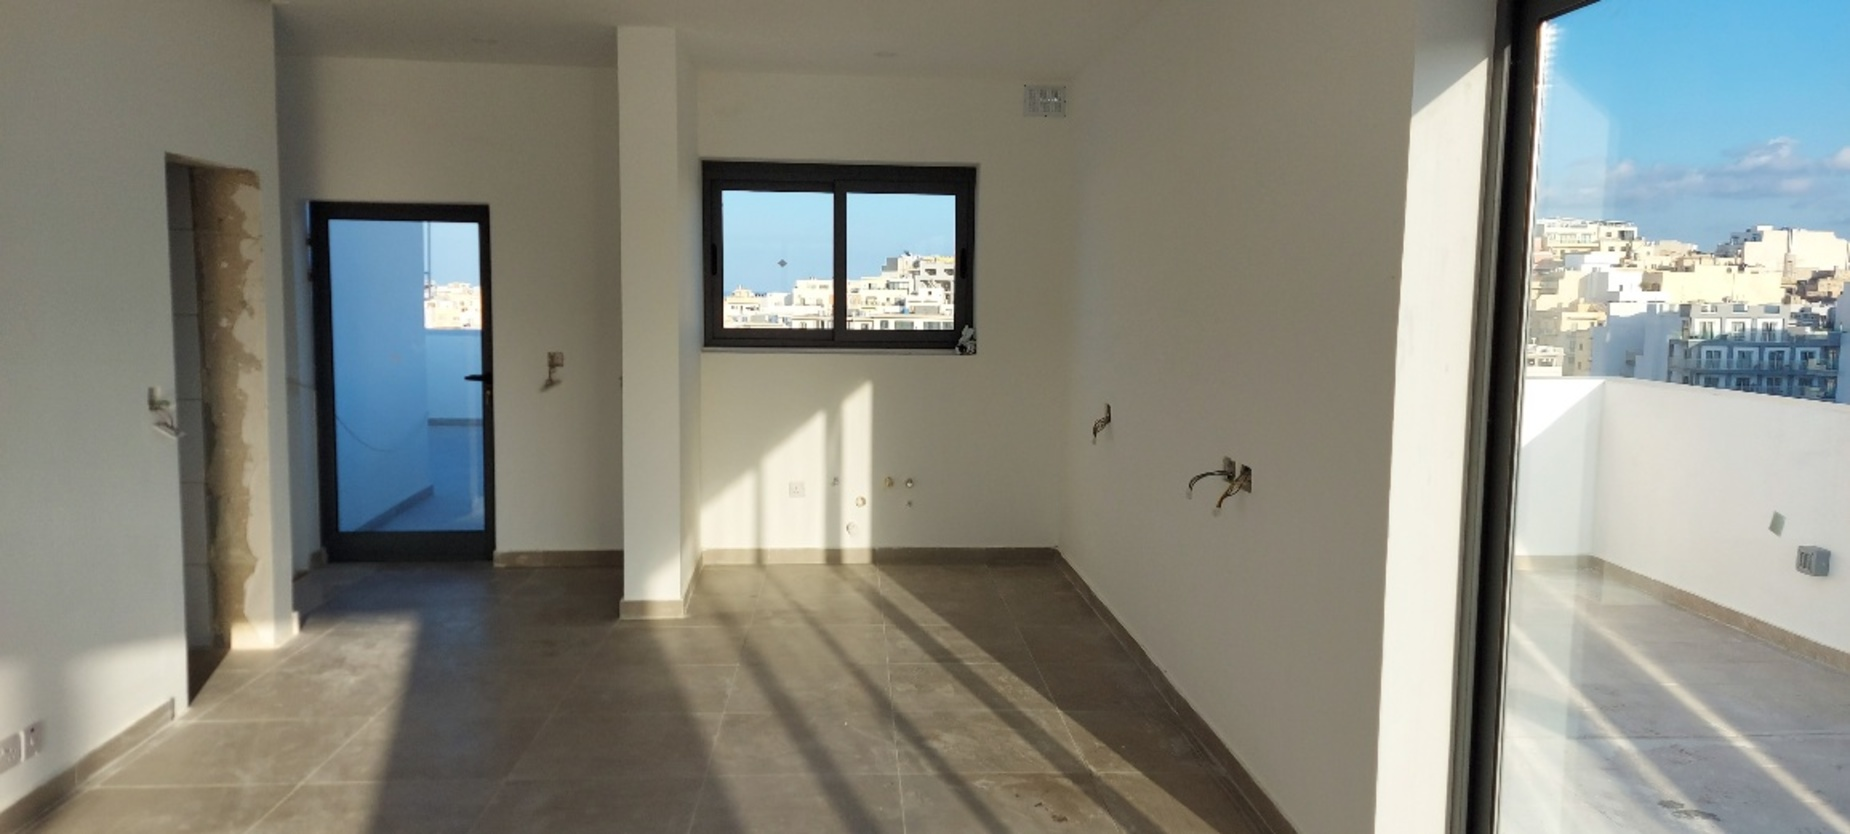 4 bed Penthouse For Sale in Mellieha, Mellieha - thumb 8